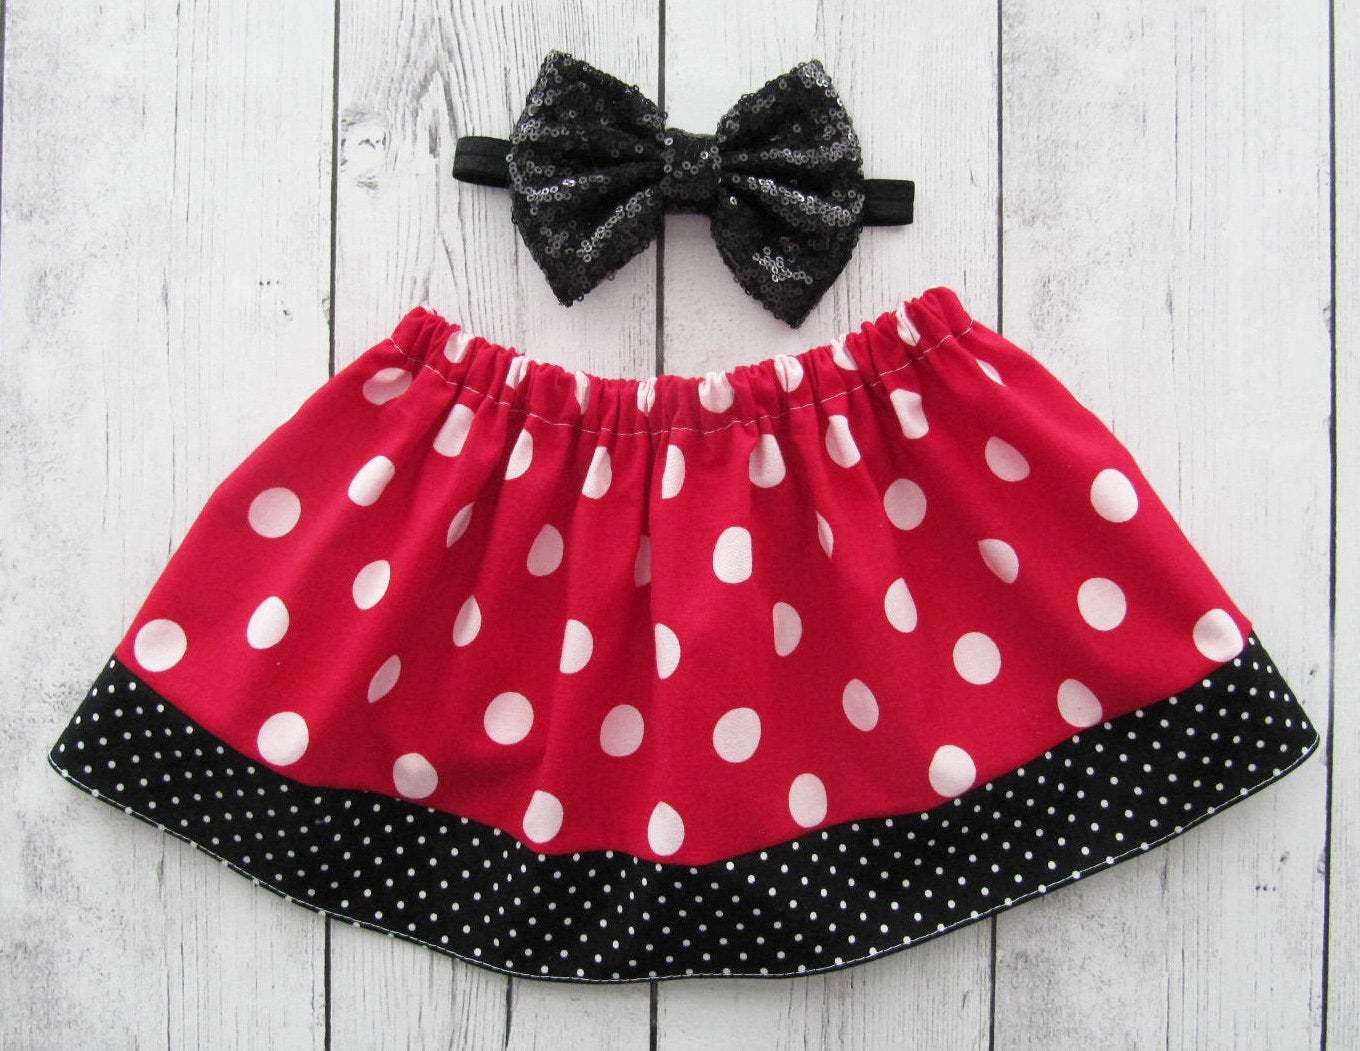 Red Minnie Mouse Polka Dot Skirt for baby girl - red black skirt, polka dot skirt, baby girl skirt, baby girl skirts, red dot